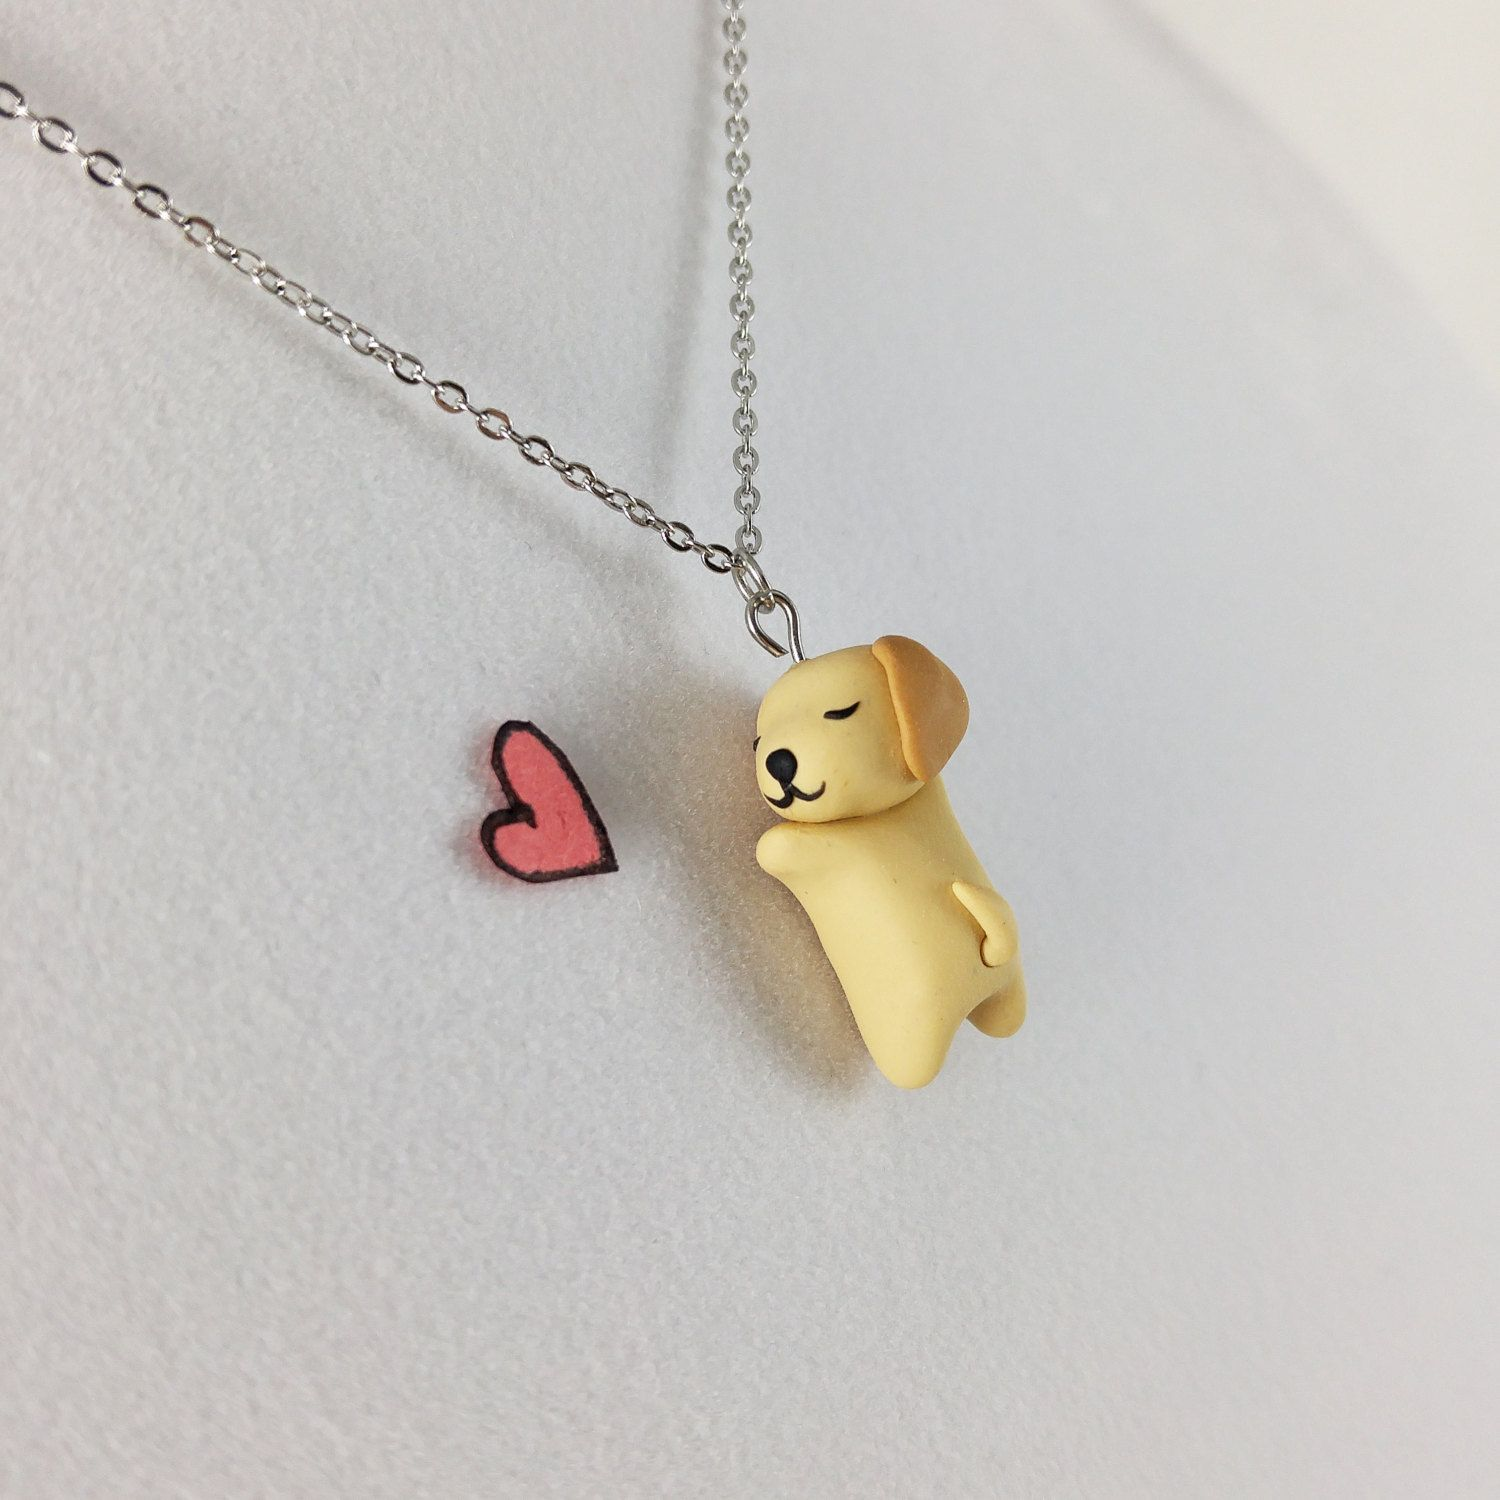 Dog Necklace Polymer Clay Charm Necklace Golden Retriever